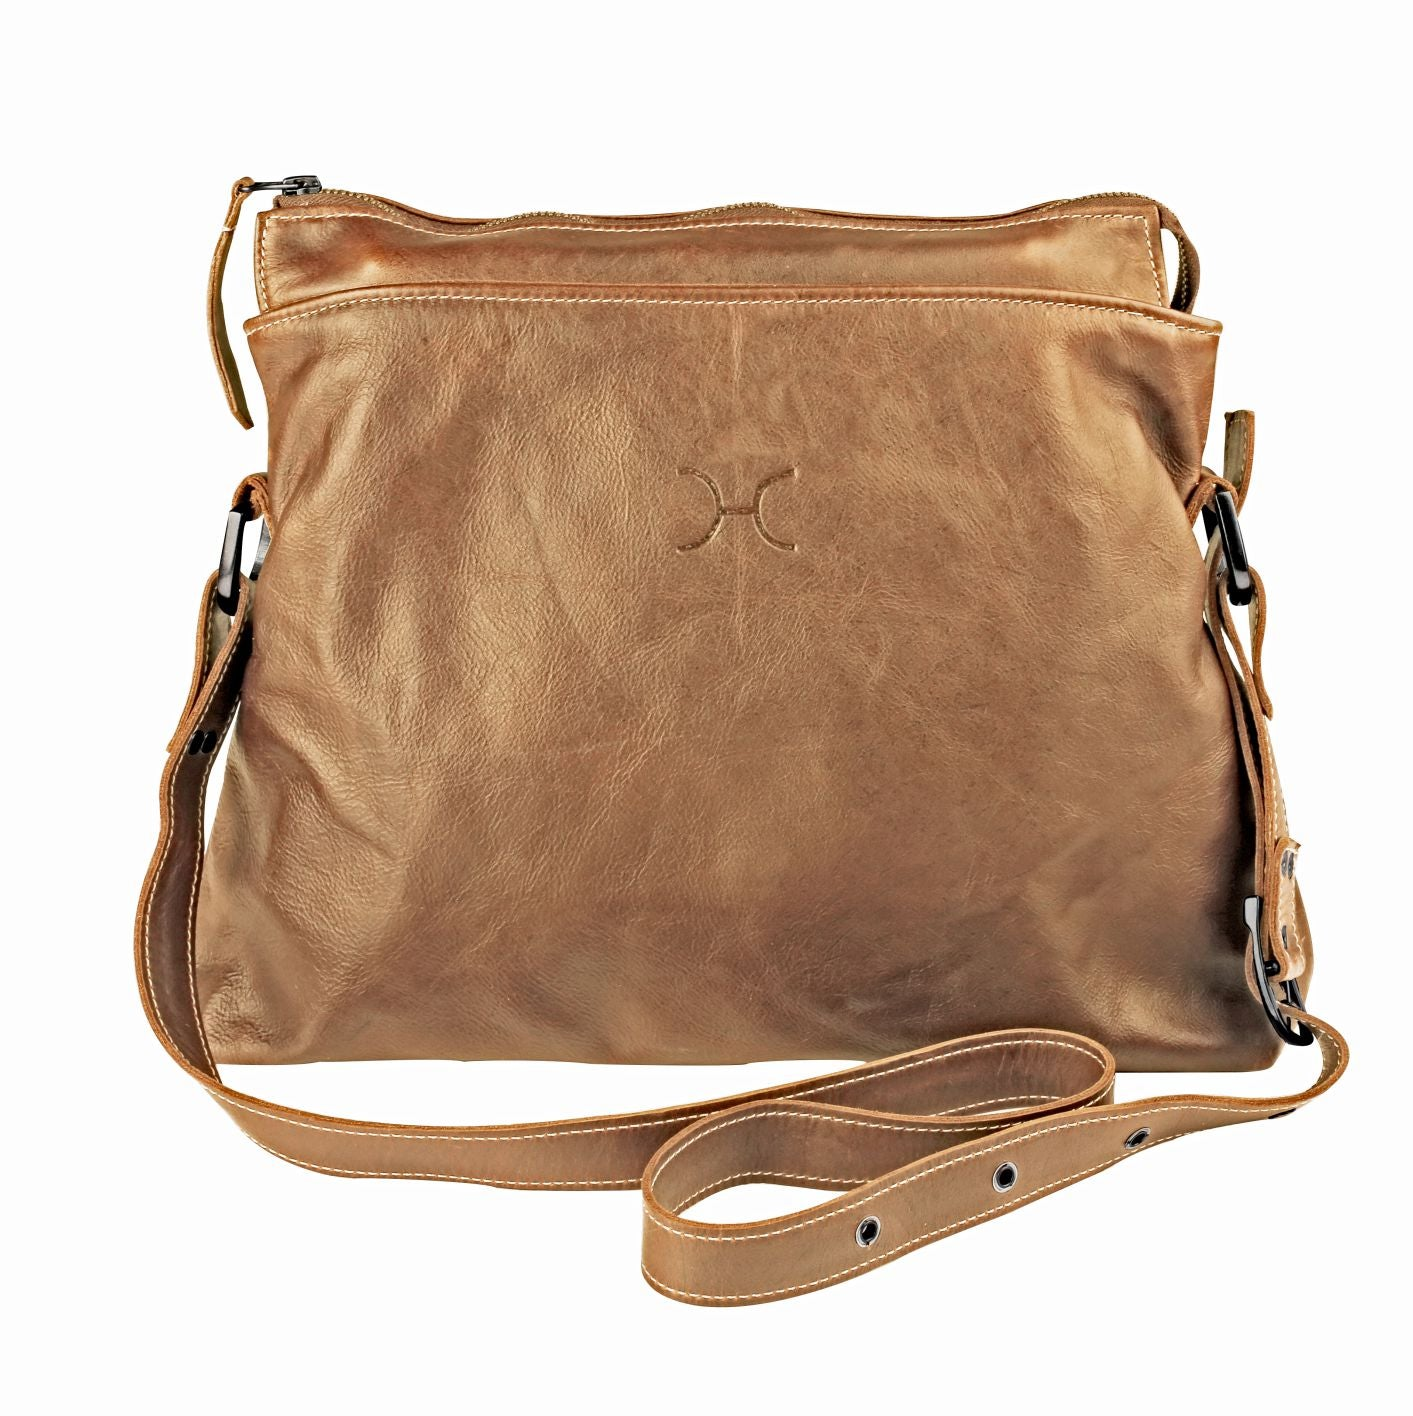 Thandana Messenger Boho Sling Bag - Hazelnut - Zufrique Boutique